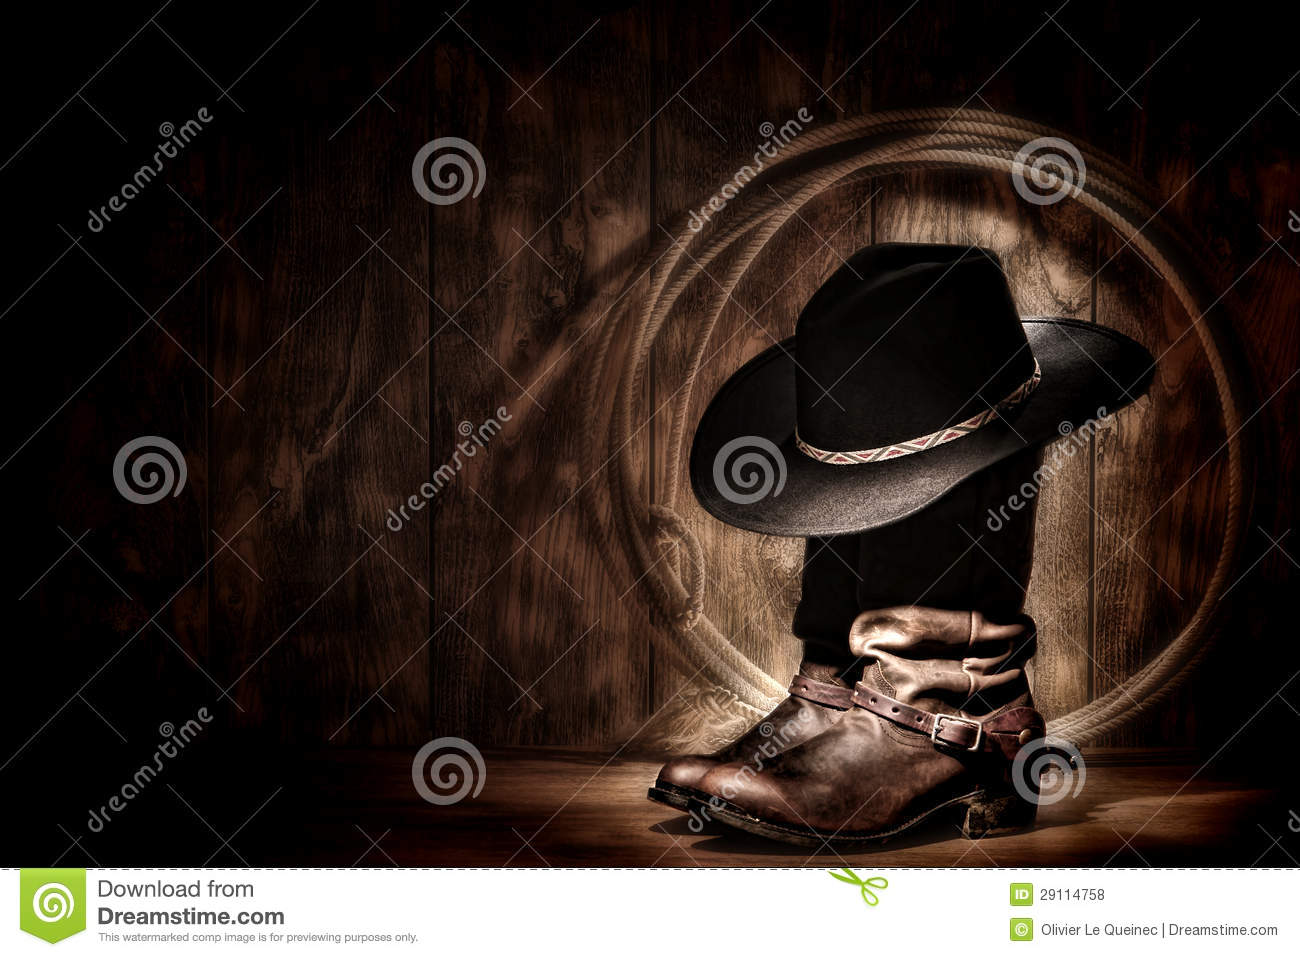 95dc8835545 American West rodeo cowboy traditional black felt hat resting atop worn  leather working rancher roper boots and lasso lariat in a vintage ranch  wood barn ...